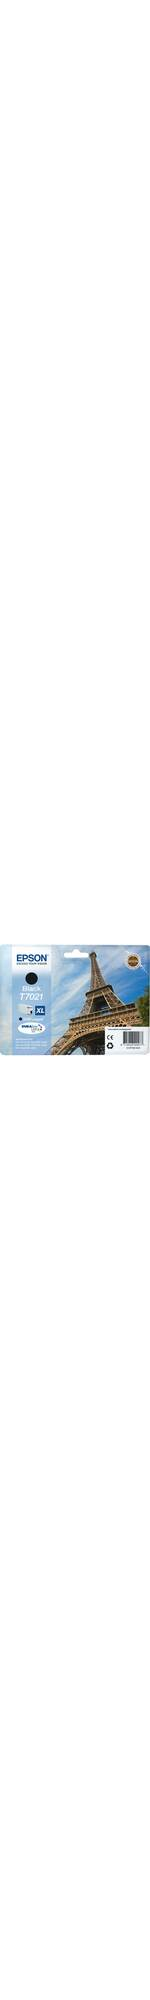 Epson DURABrite Ultra C13T70214010 Ink Cartridge - Black